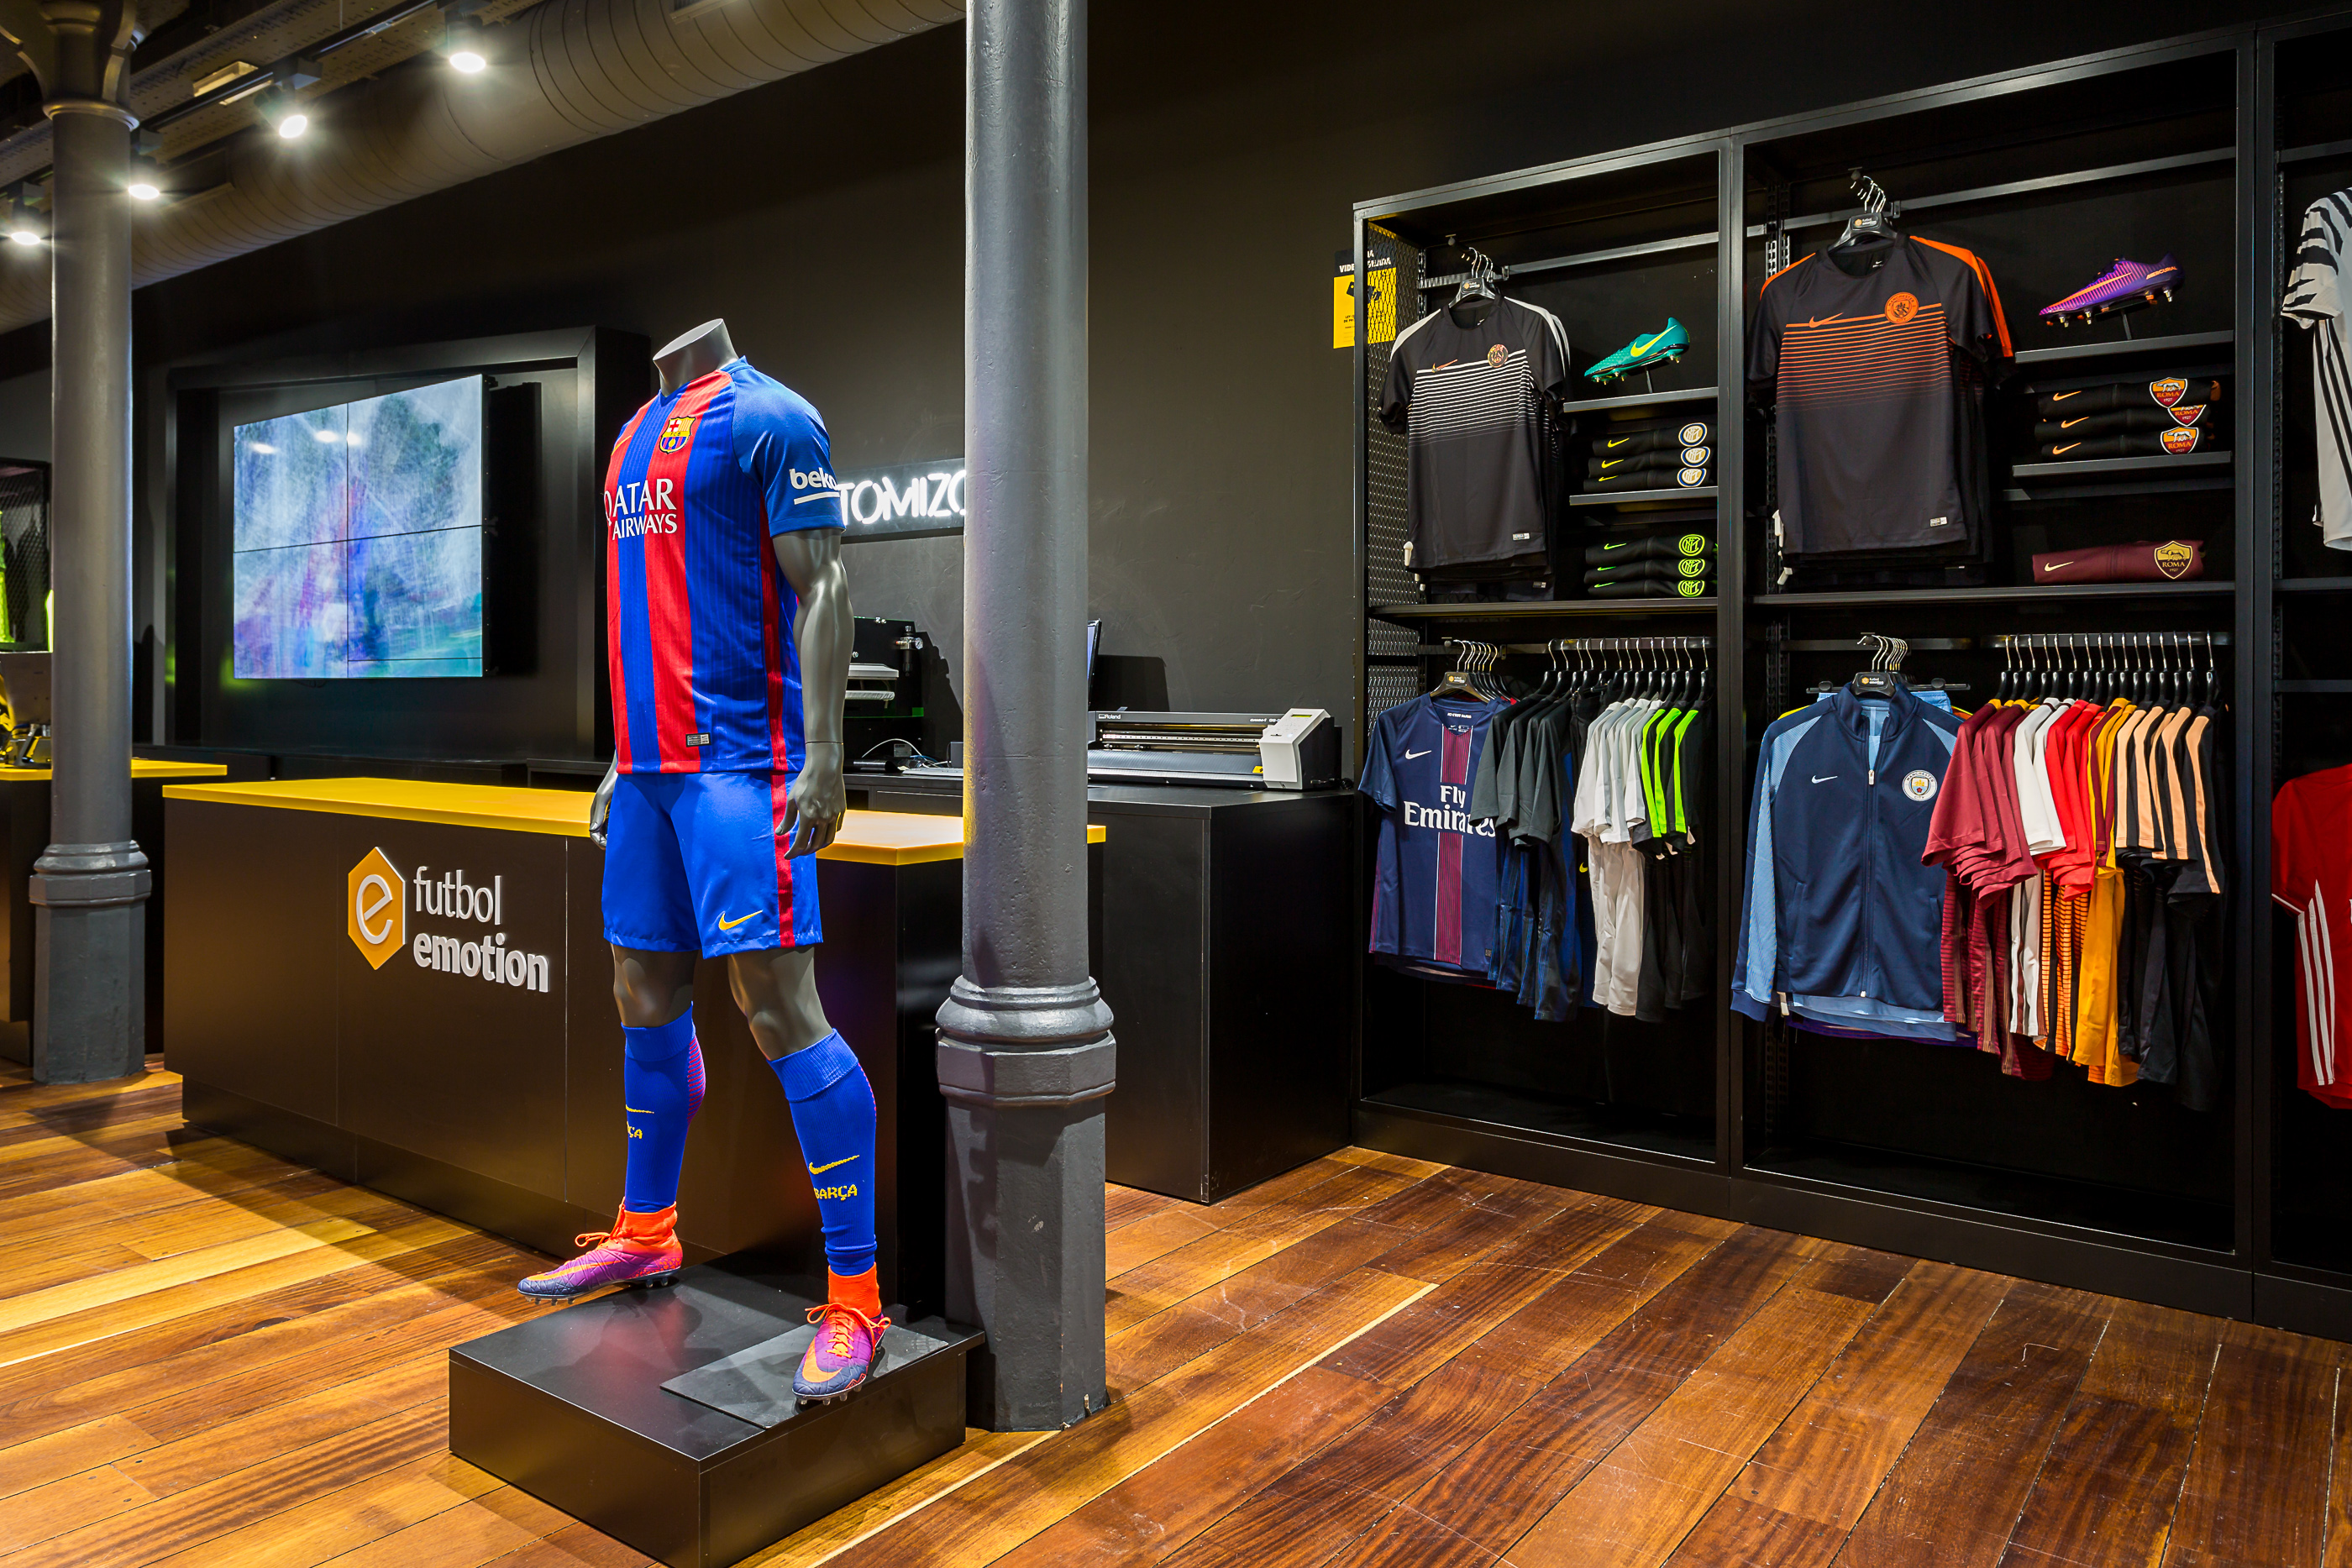 Futbol Emotion | Barcelona Shopping City | Deportes